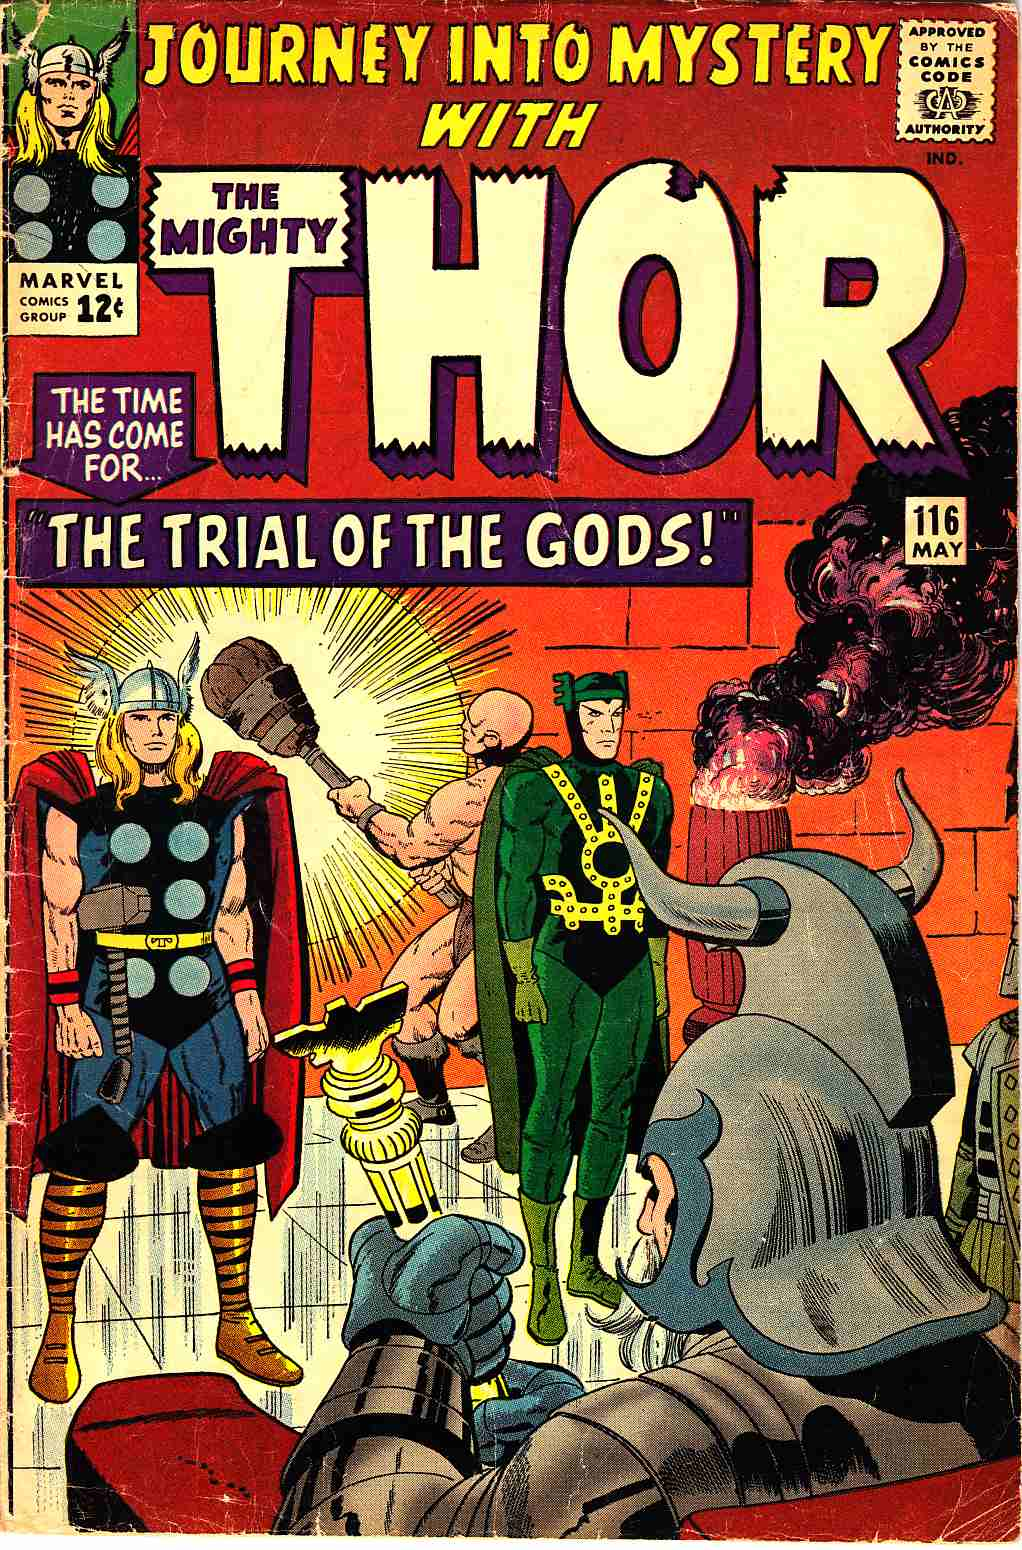 Journey Into Mystery Thor #116 Very Good (4.0) [Marvel Comic] THUMBNAIL